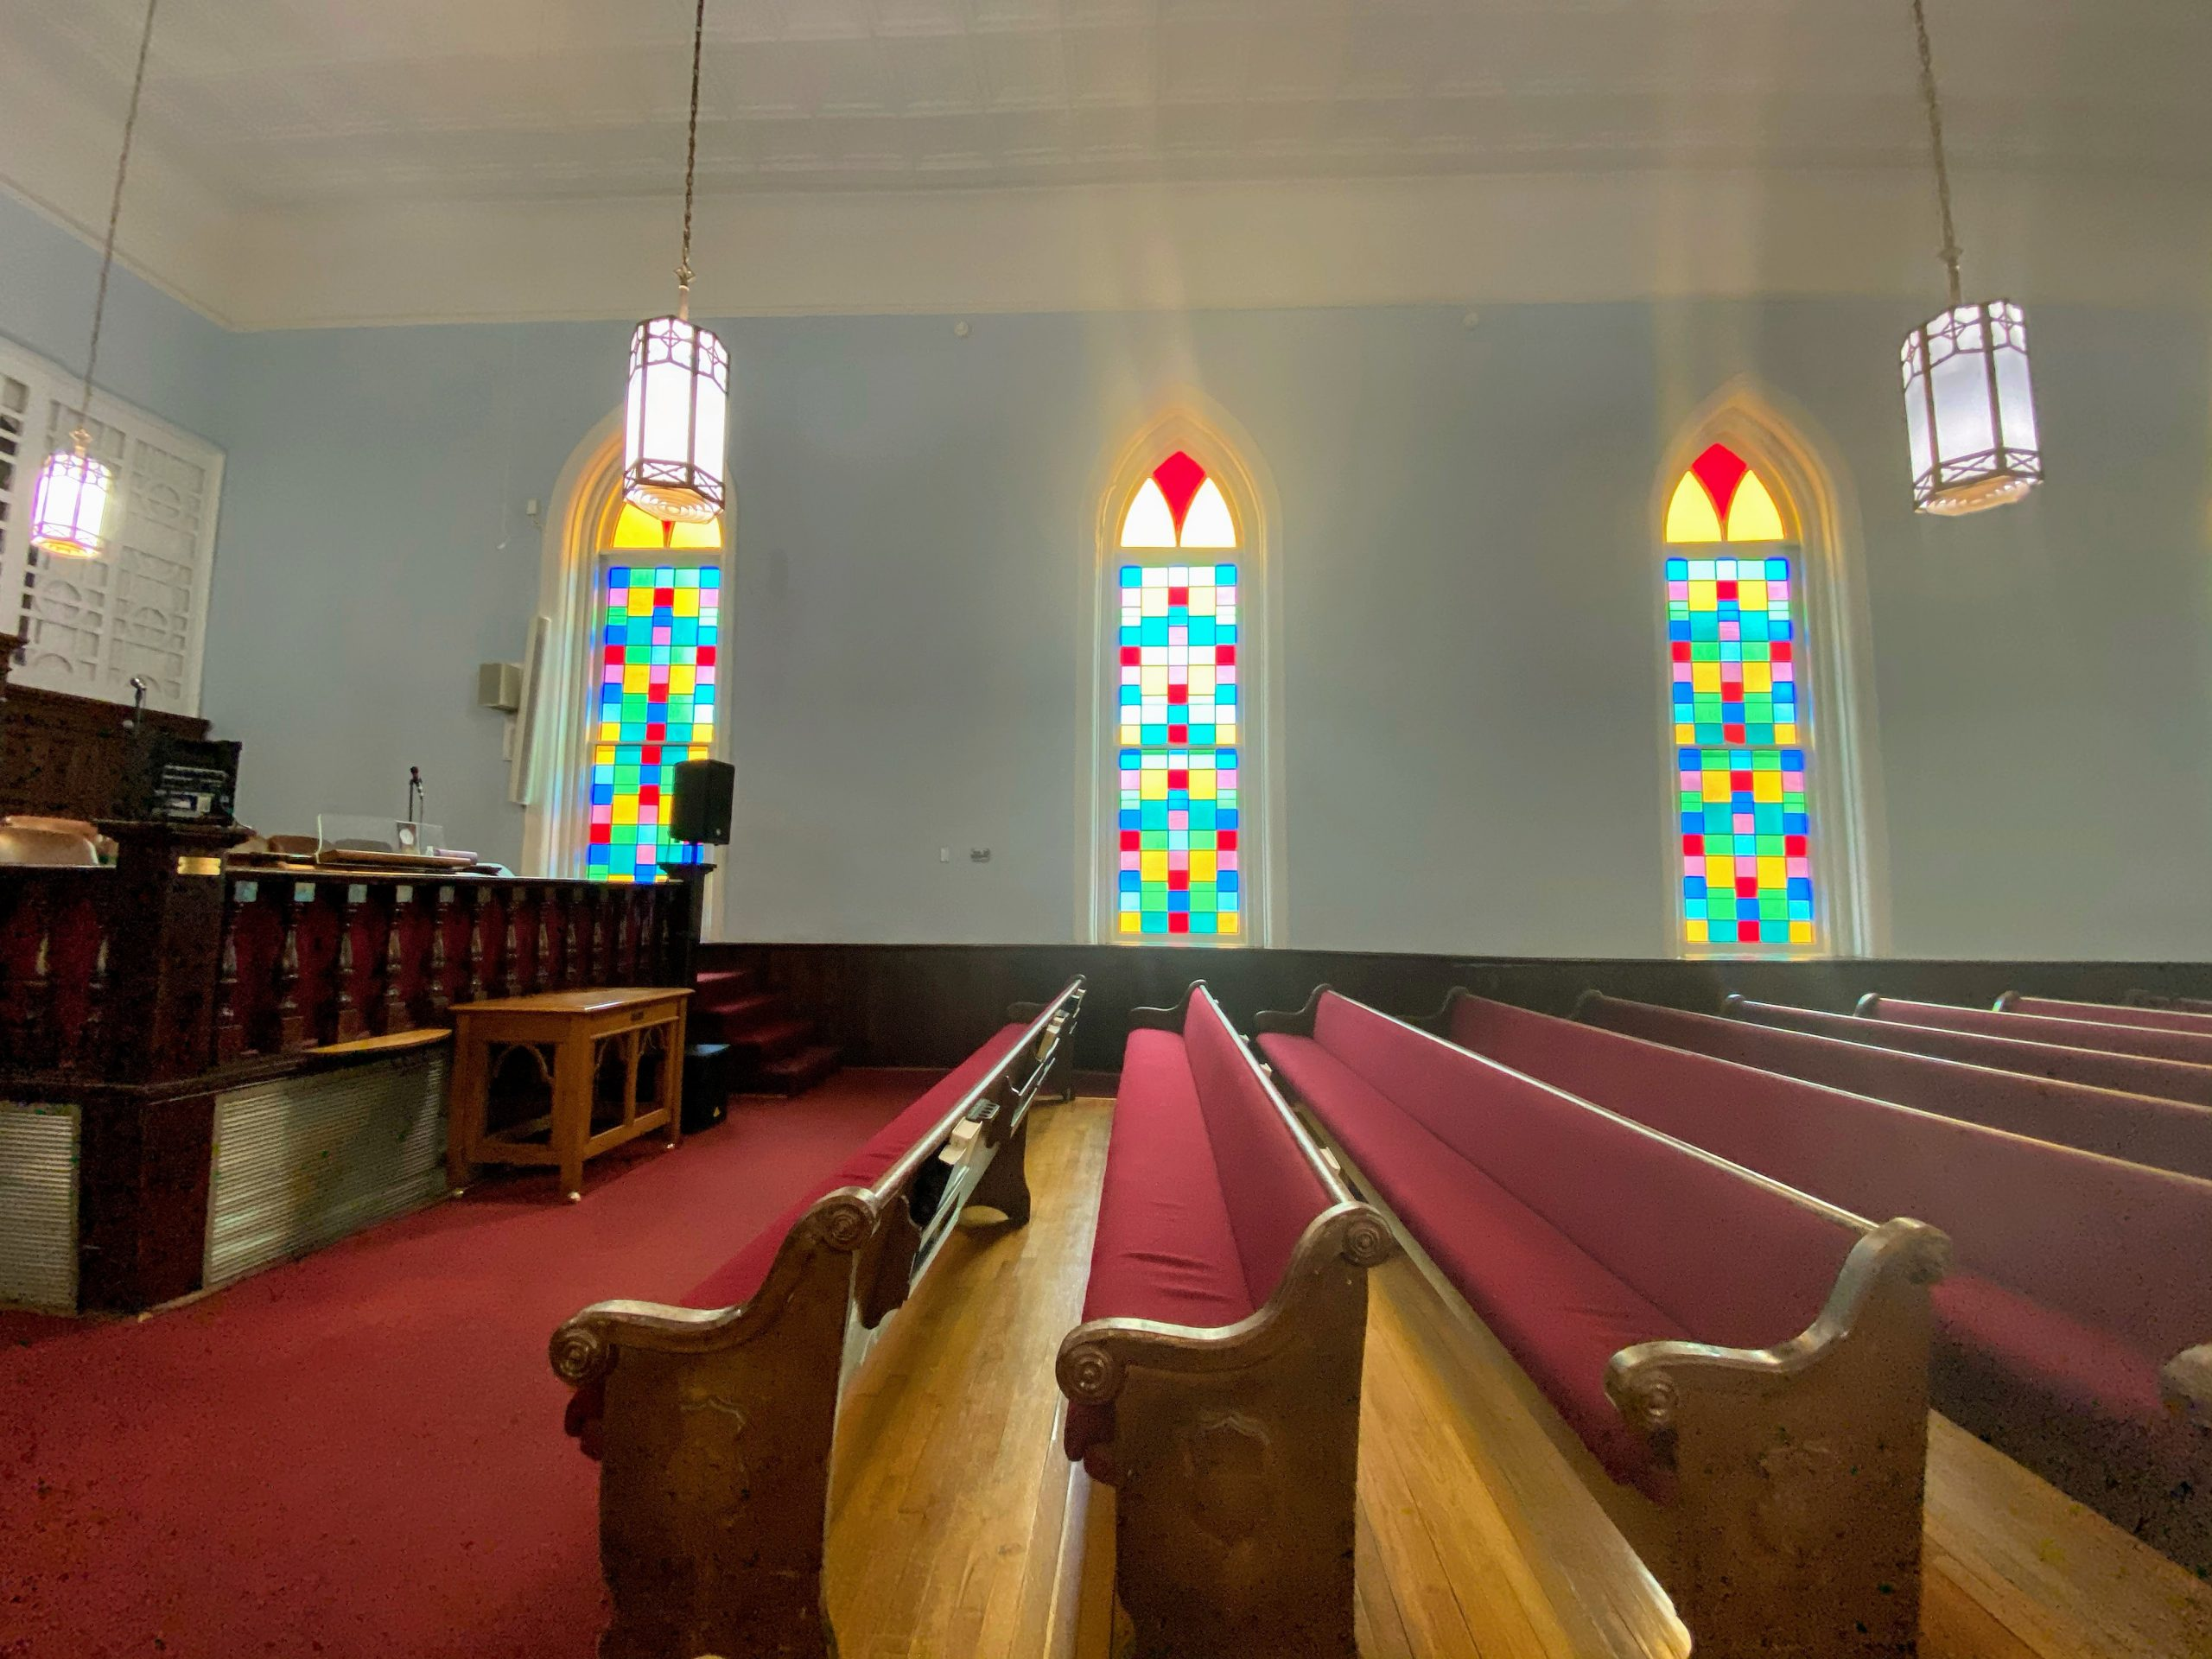 church pews with stained glass in background